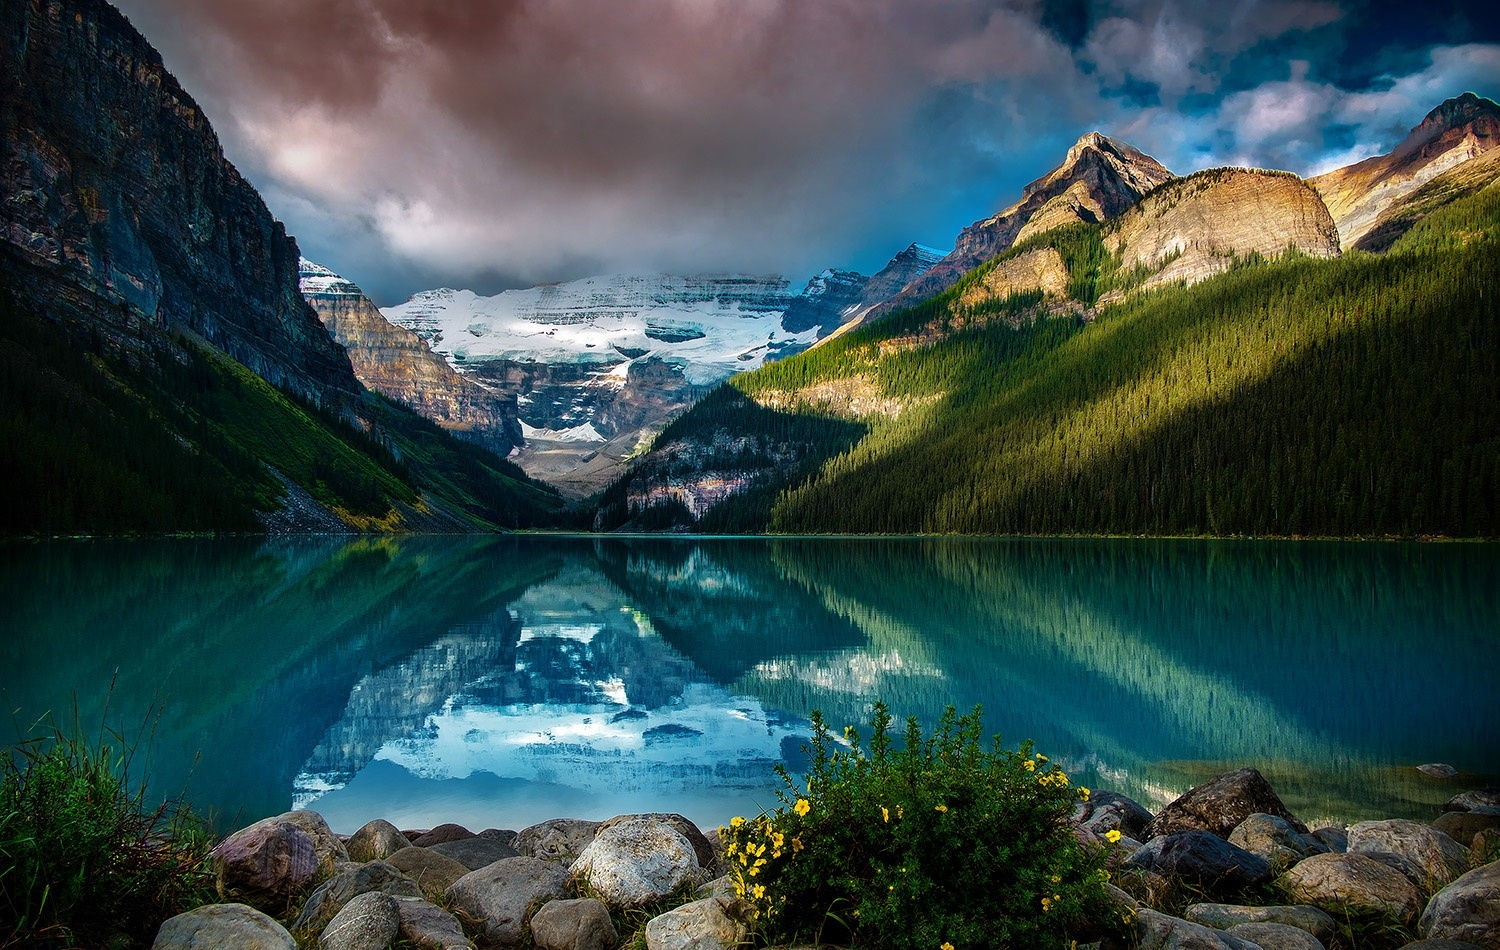 Fall Mountains Hd Wallpaper Pictures Photography Nature Landscape Lake Mountains Forest